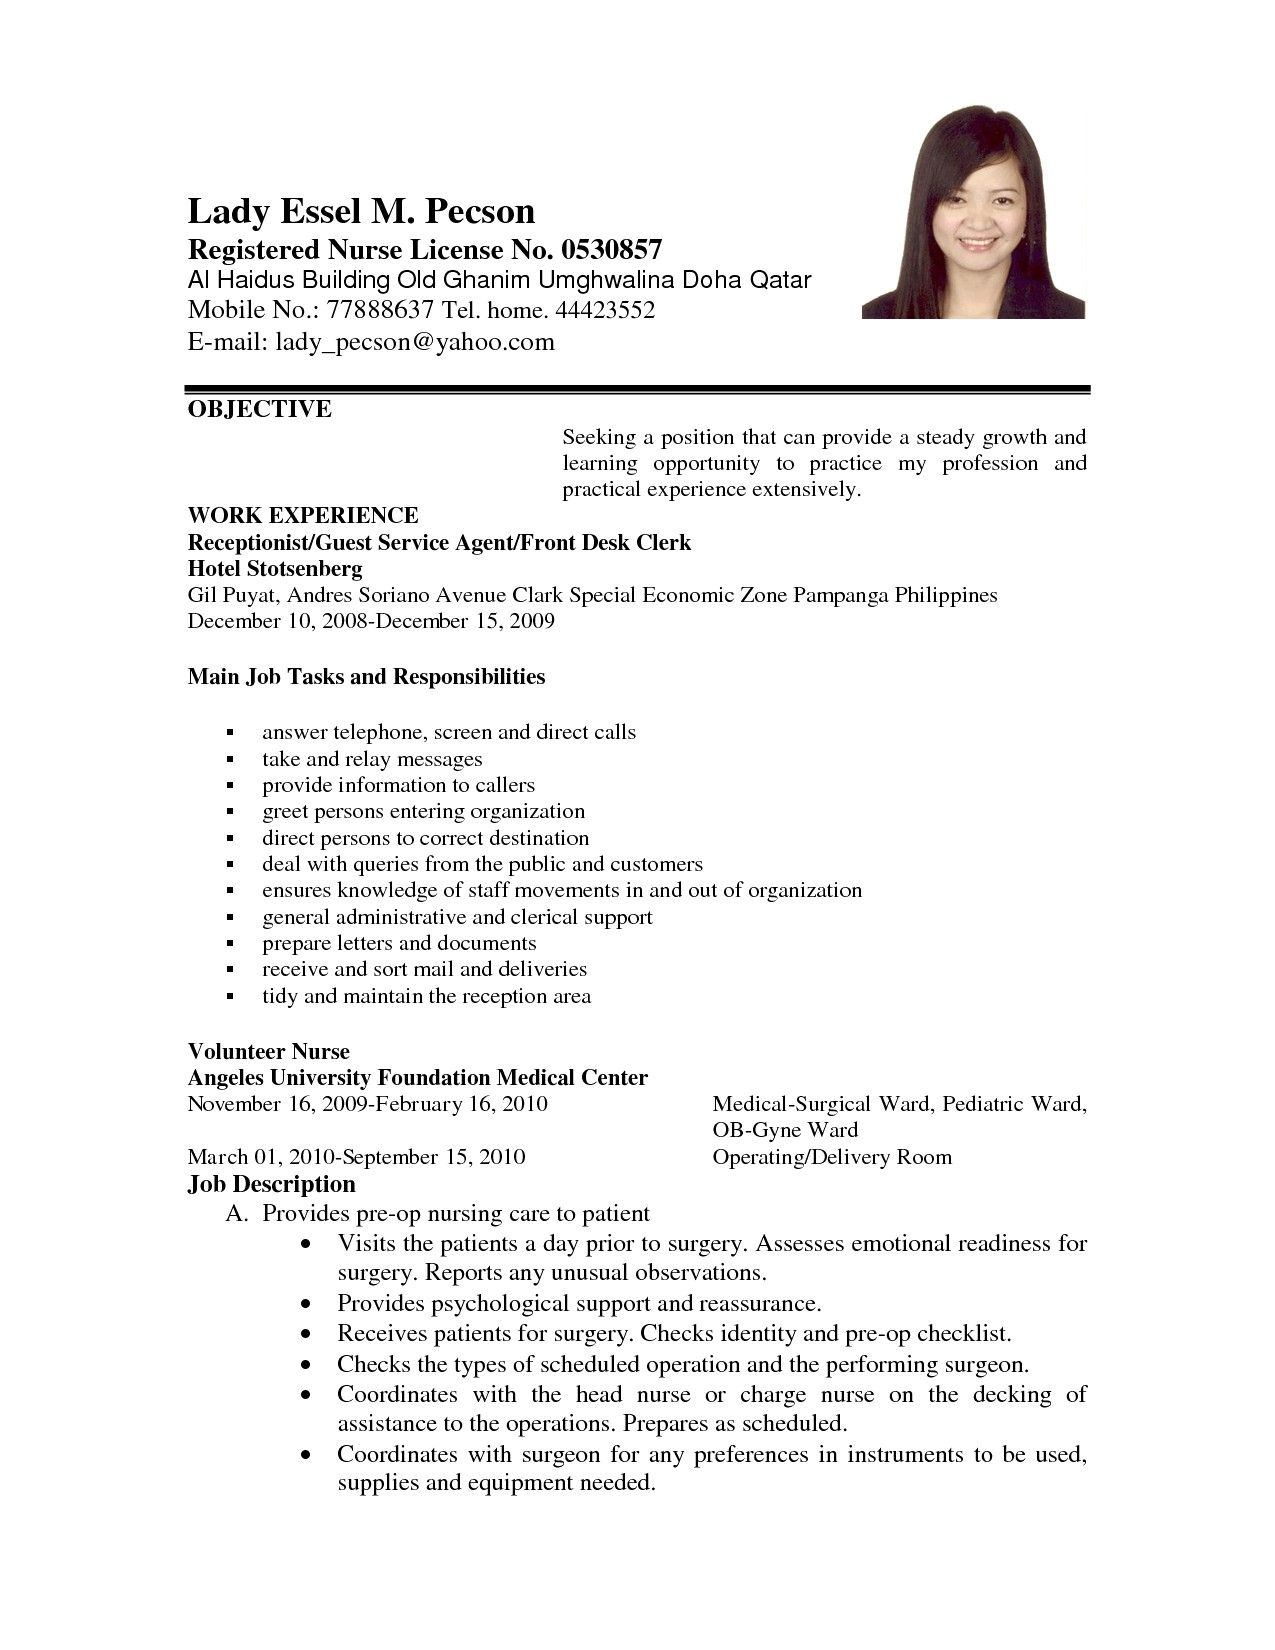 career objective resume examples awesome example applying for job of object simple in Resume Simple Objective In Resume Sample